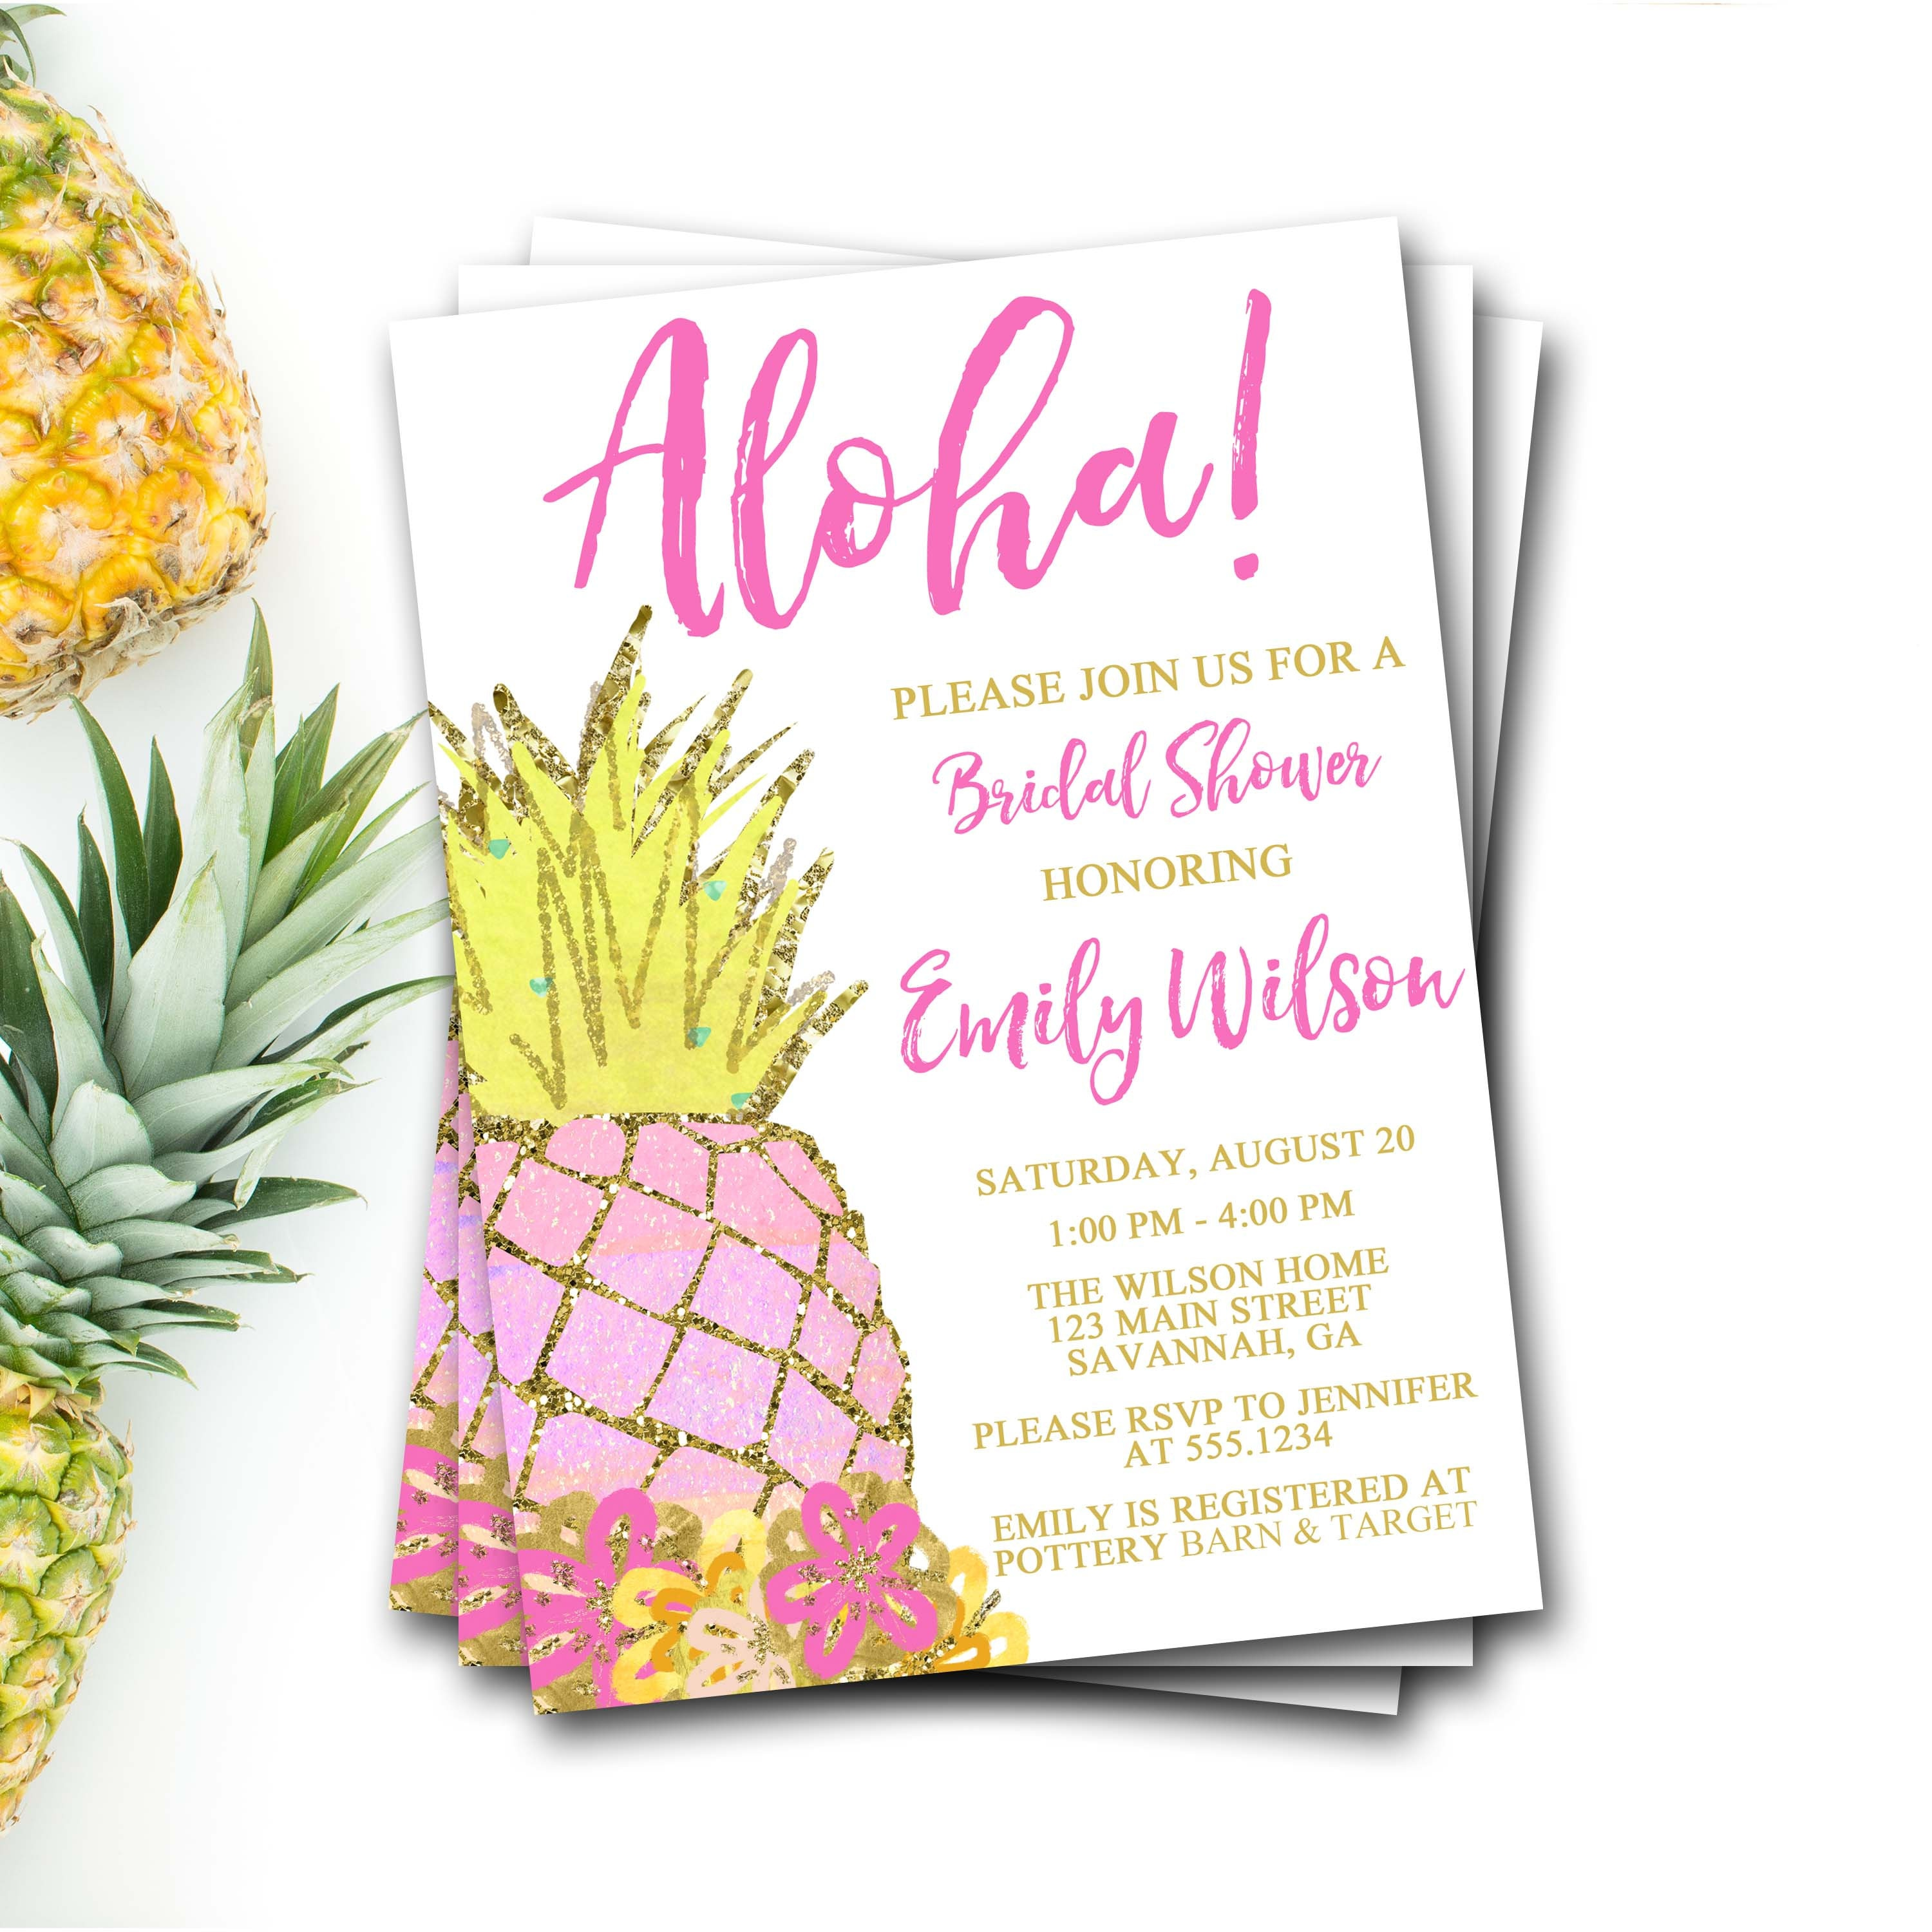 Pineapple bridal shower invitation pineapple shower pineapple pineapple bridal shower invitation pineapple shower pineapple invitation pineapple invite tropical shower invite luau bridal shower filmwisefo